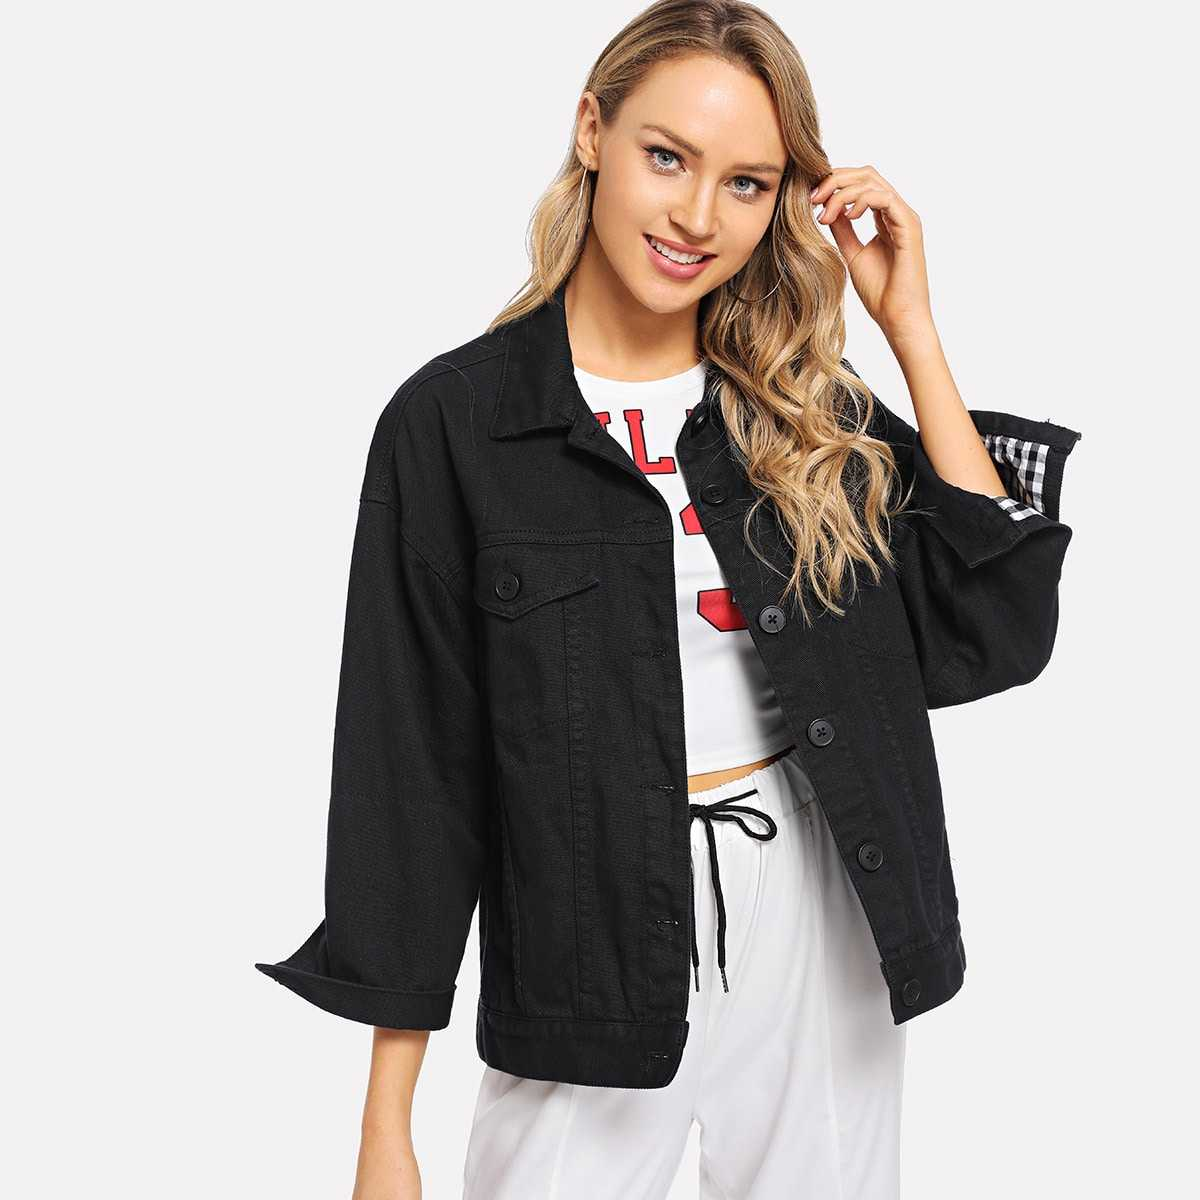 Single Breasted Solid Jacket in Black by ROMWE on GOOFASH